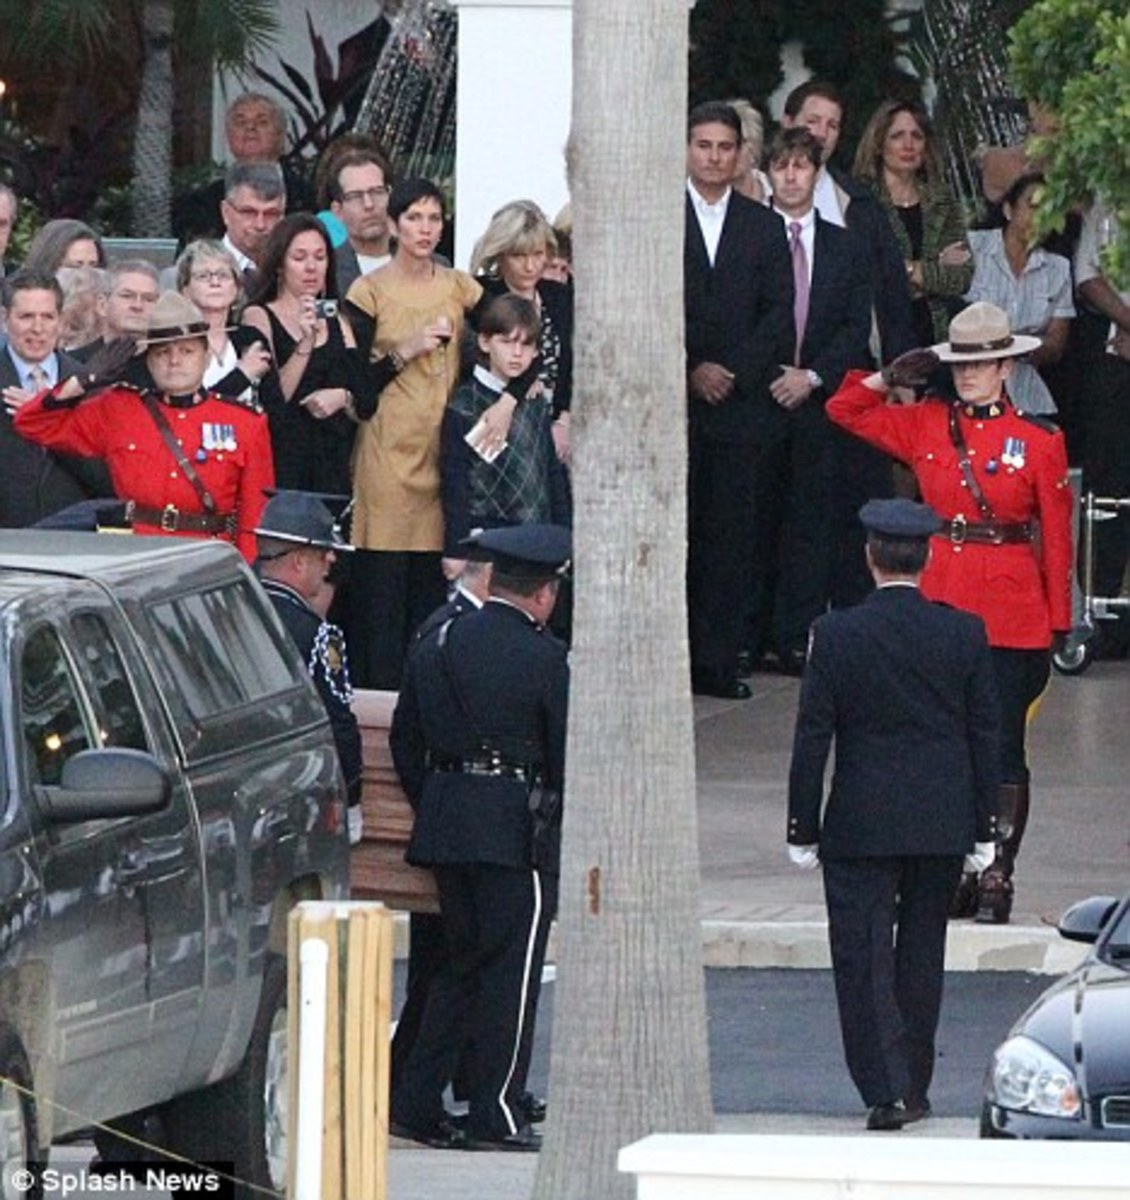 The Canadian Mounted Police carried Leslie Nielsen's coffin at his funeral in Florida